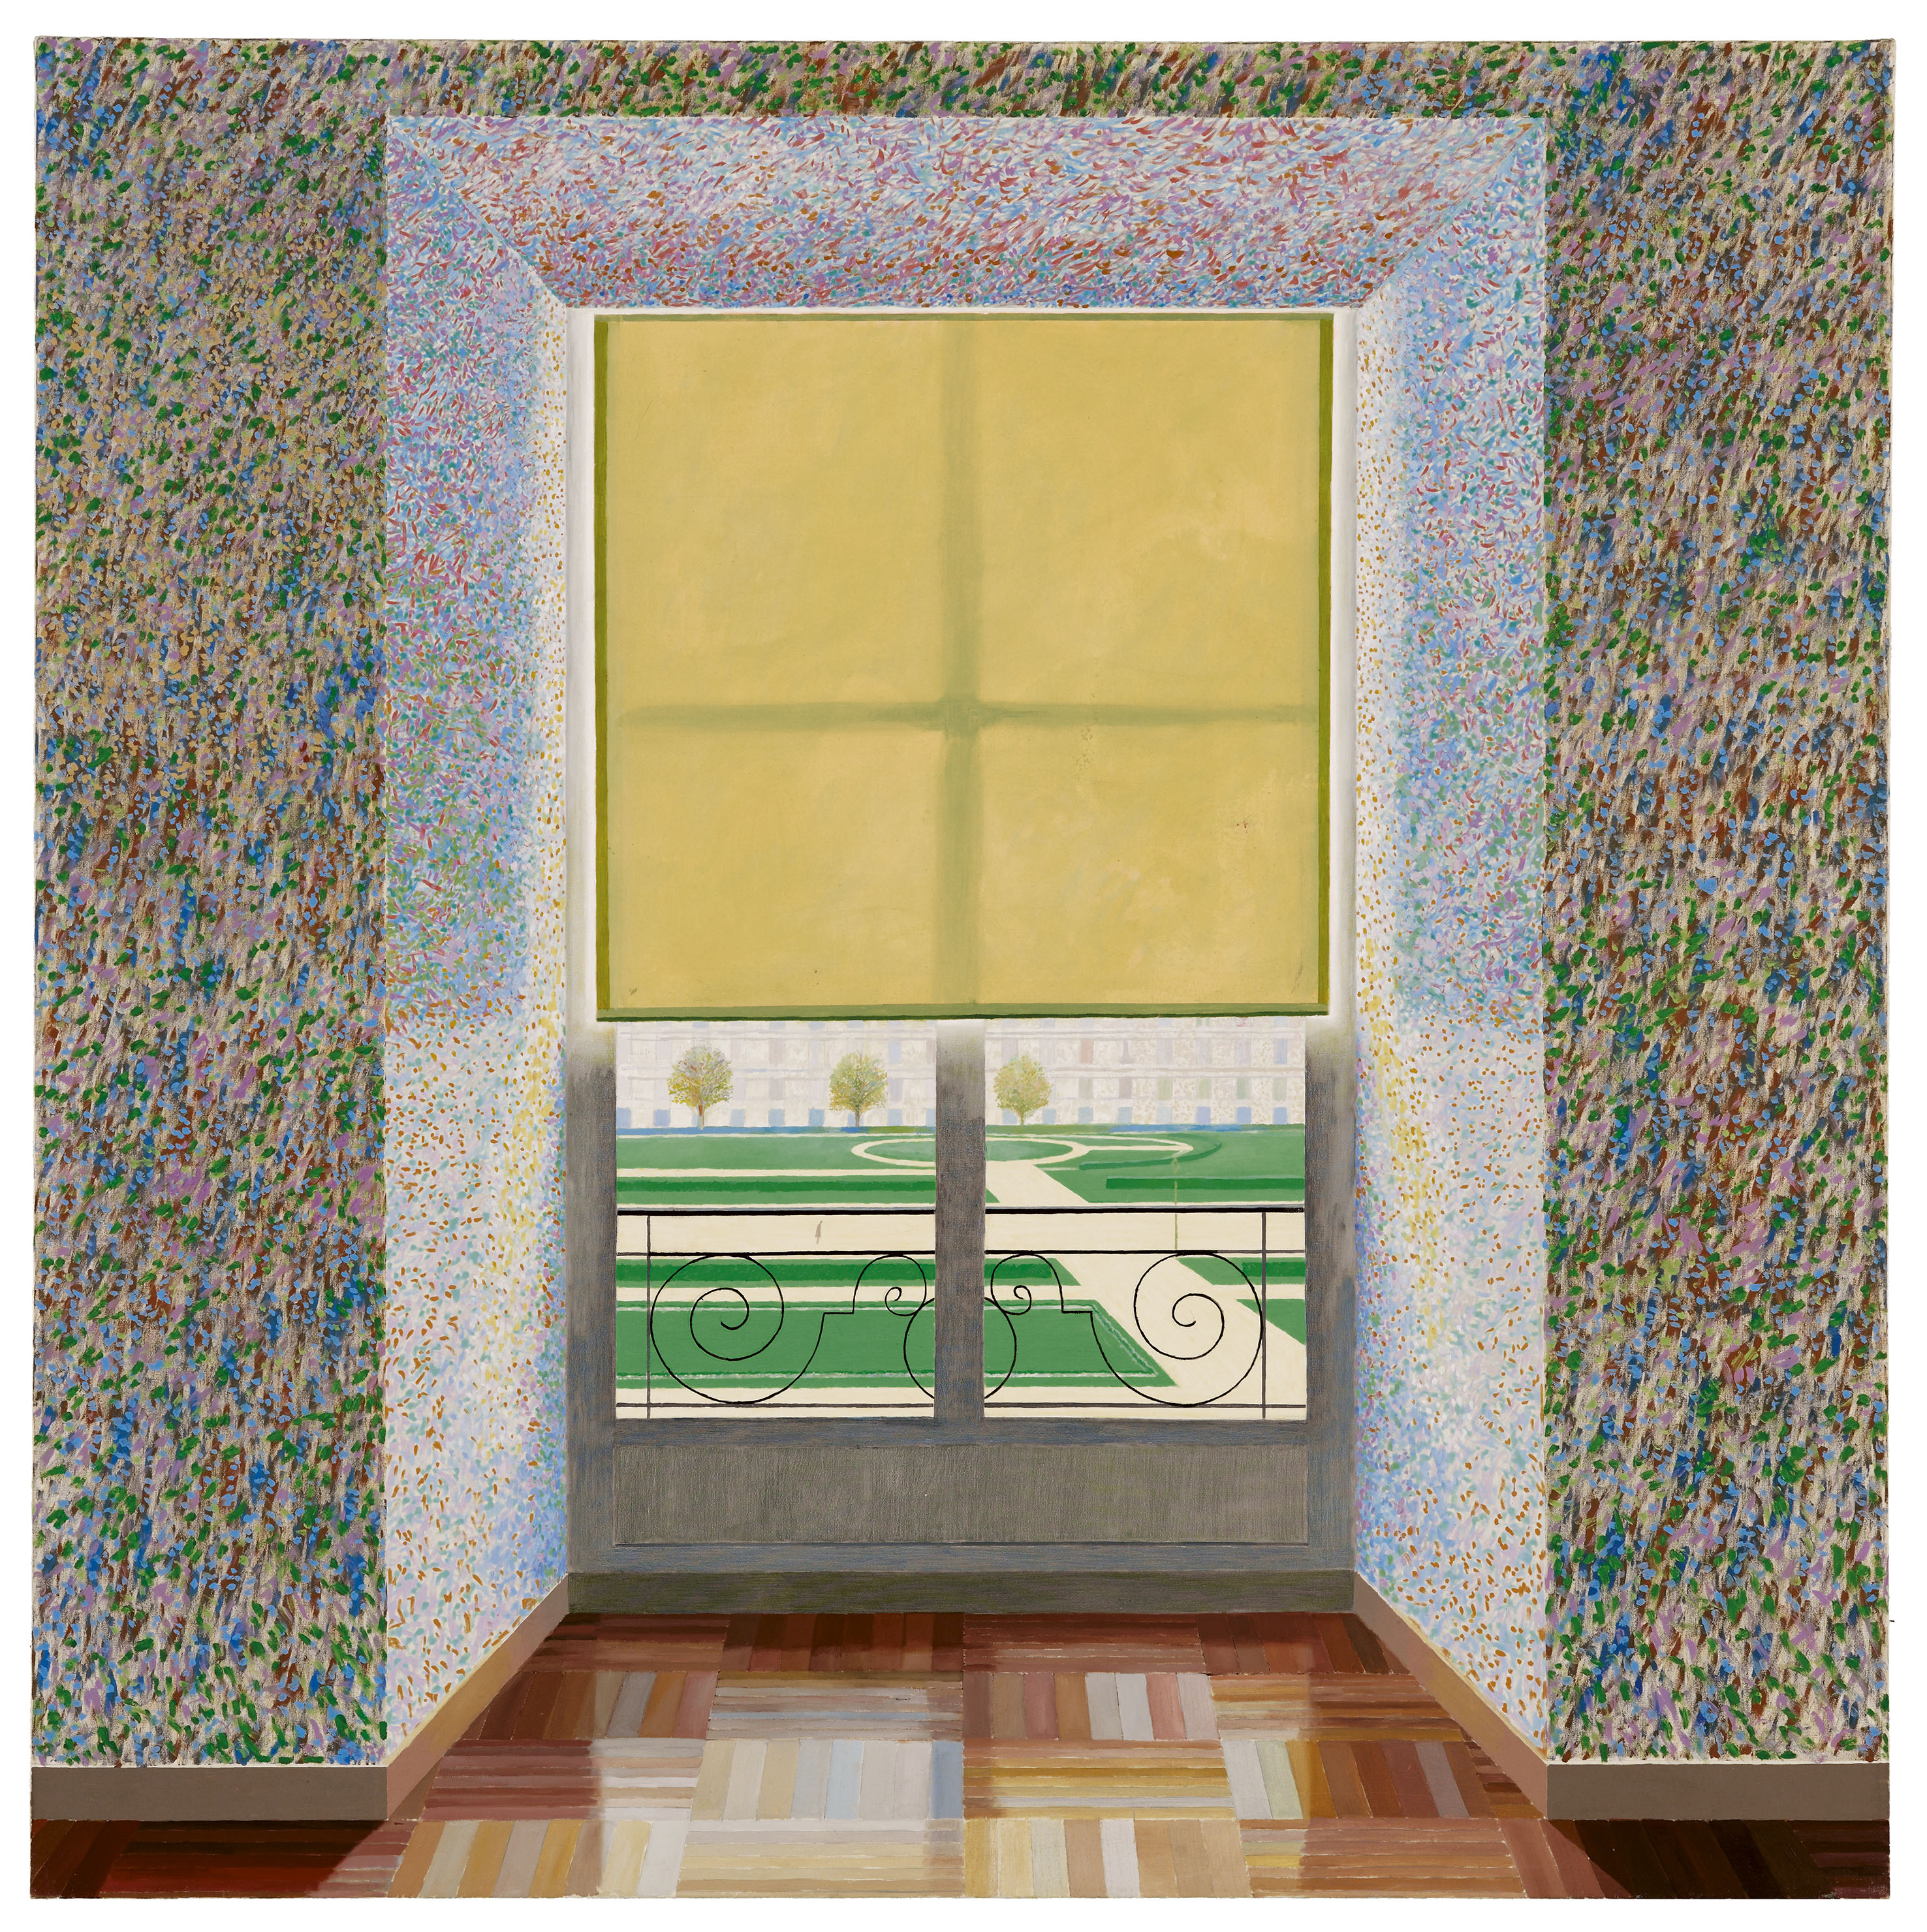 10David Hockney Contre Jour in the French Style 1974 Huile sur toile © David Hockney Collectin Ludwig Museum Budapest